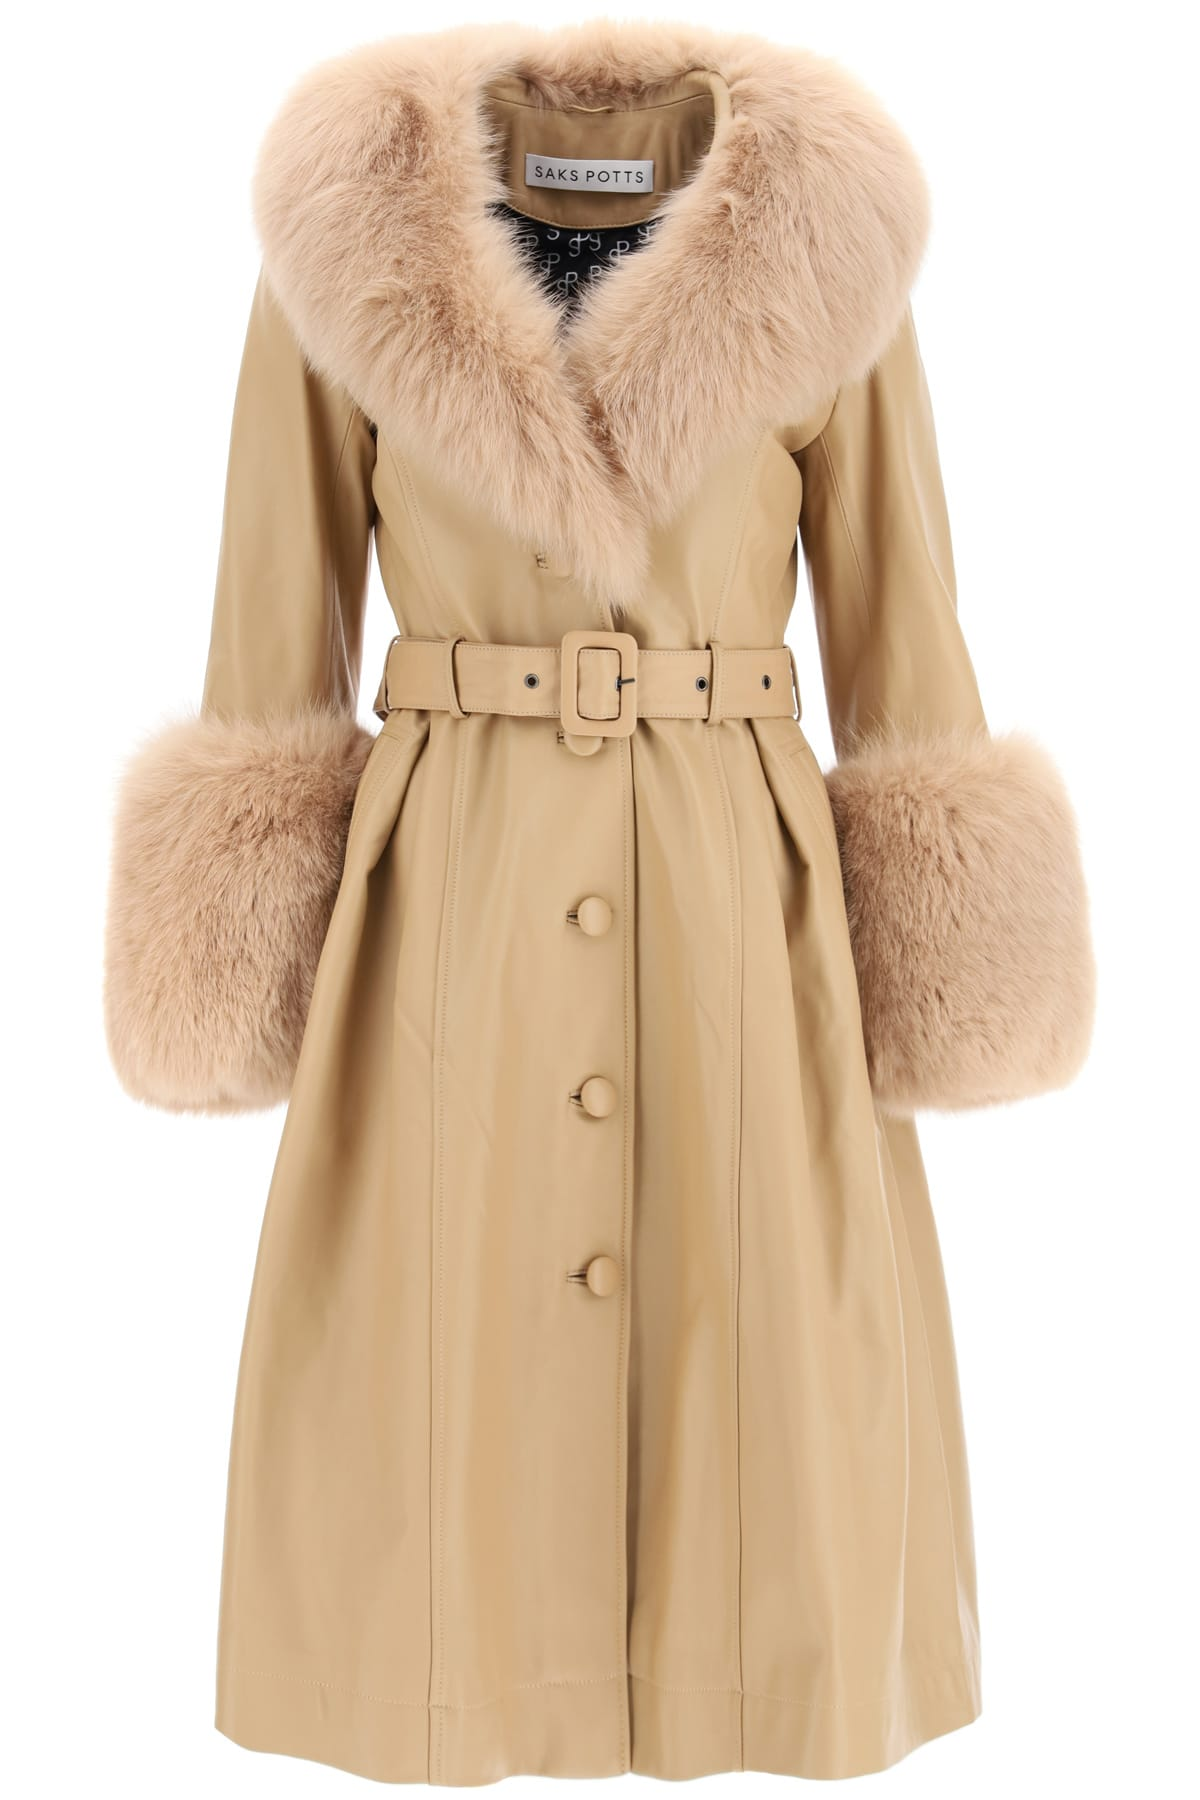 Saks Potts FOXY LEATHER COAT